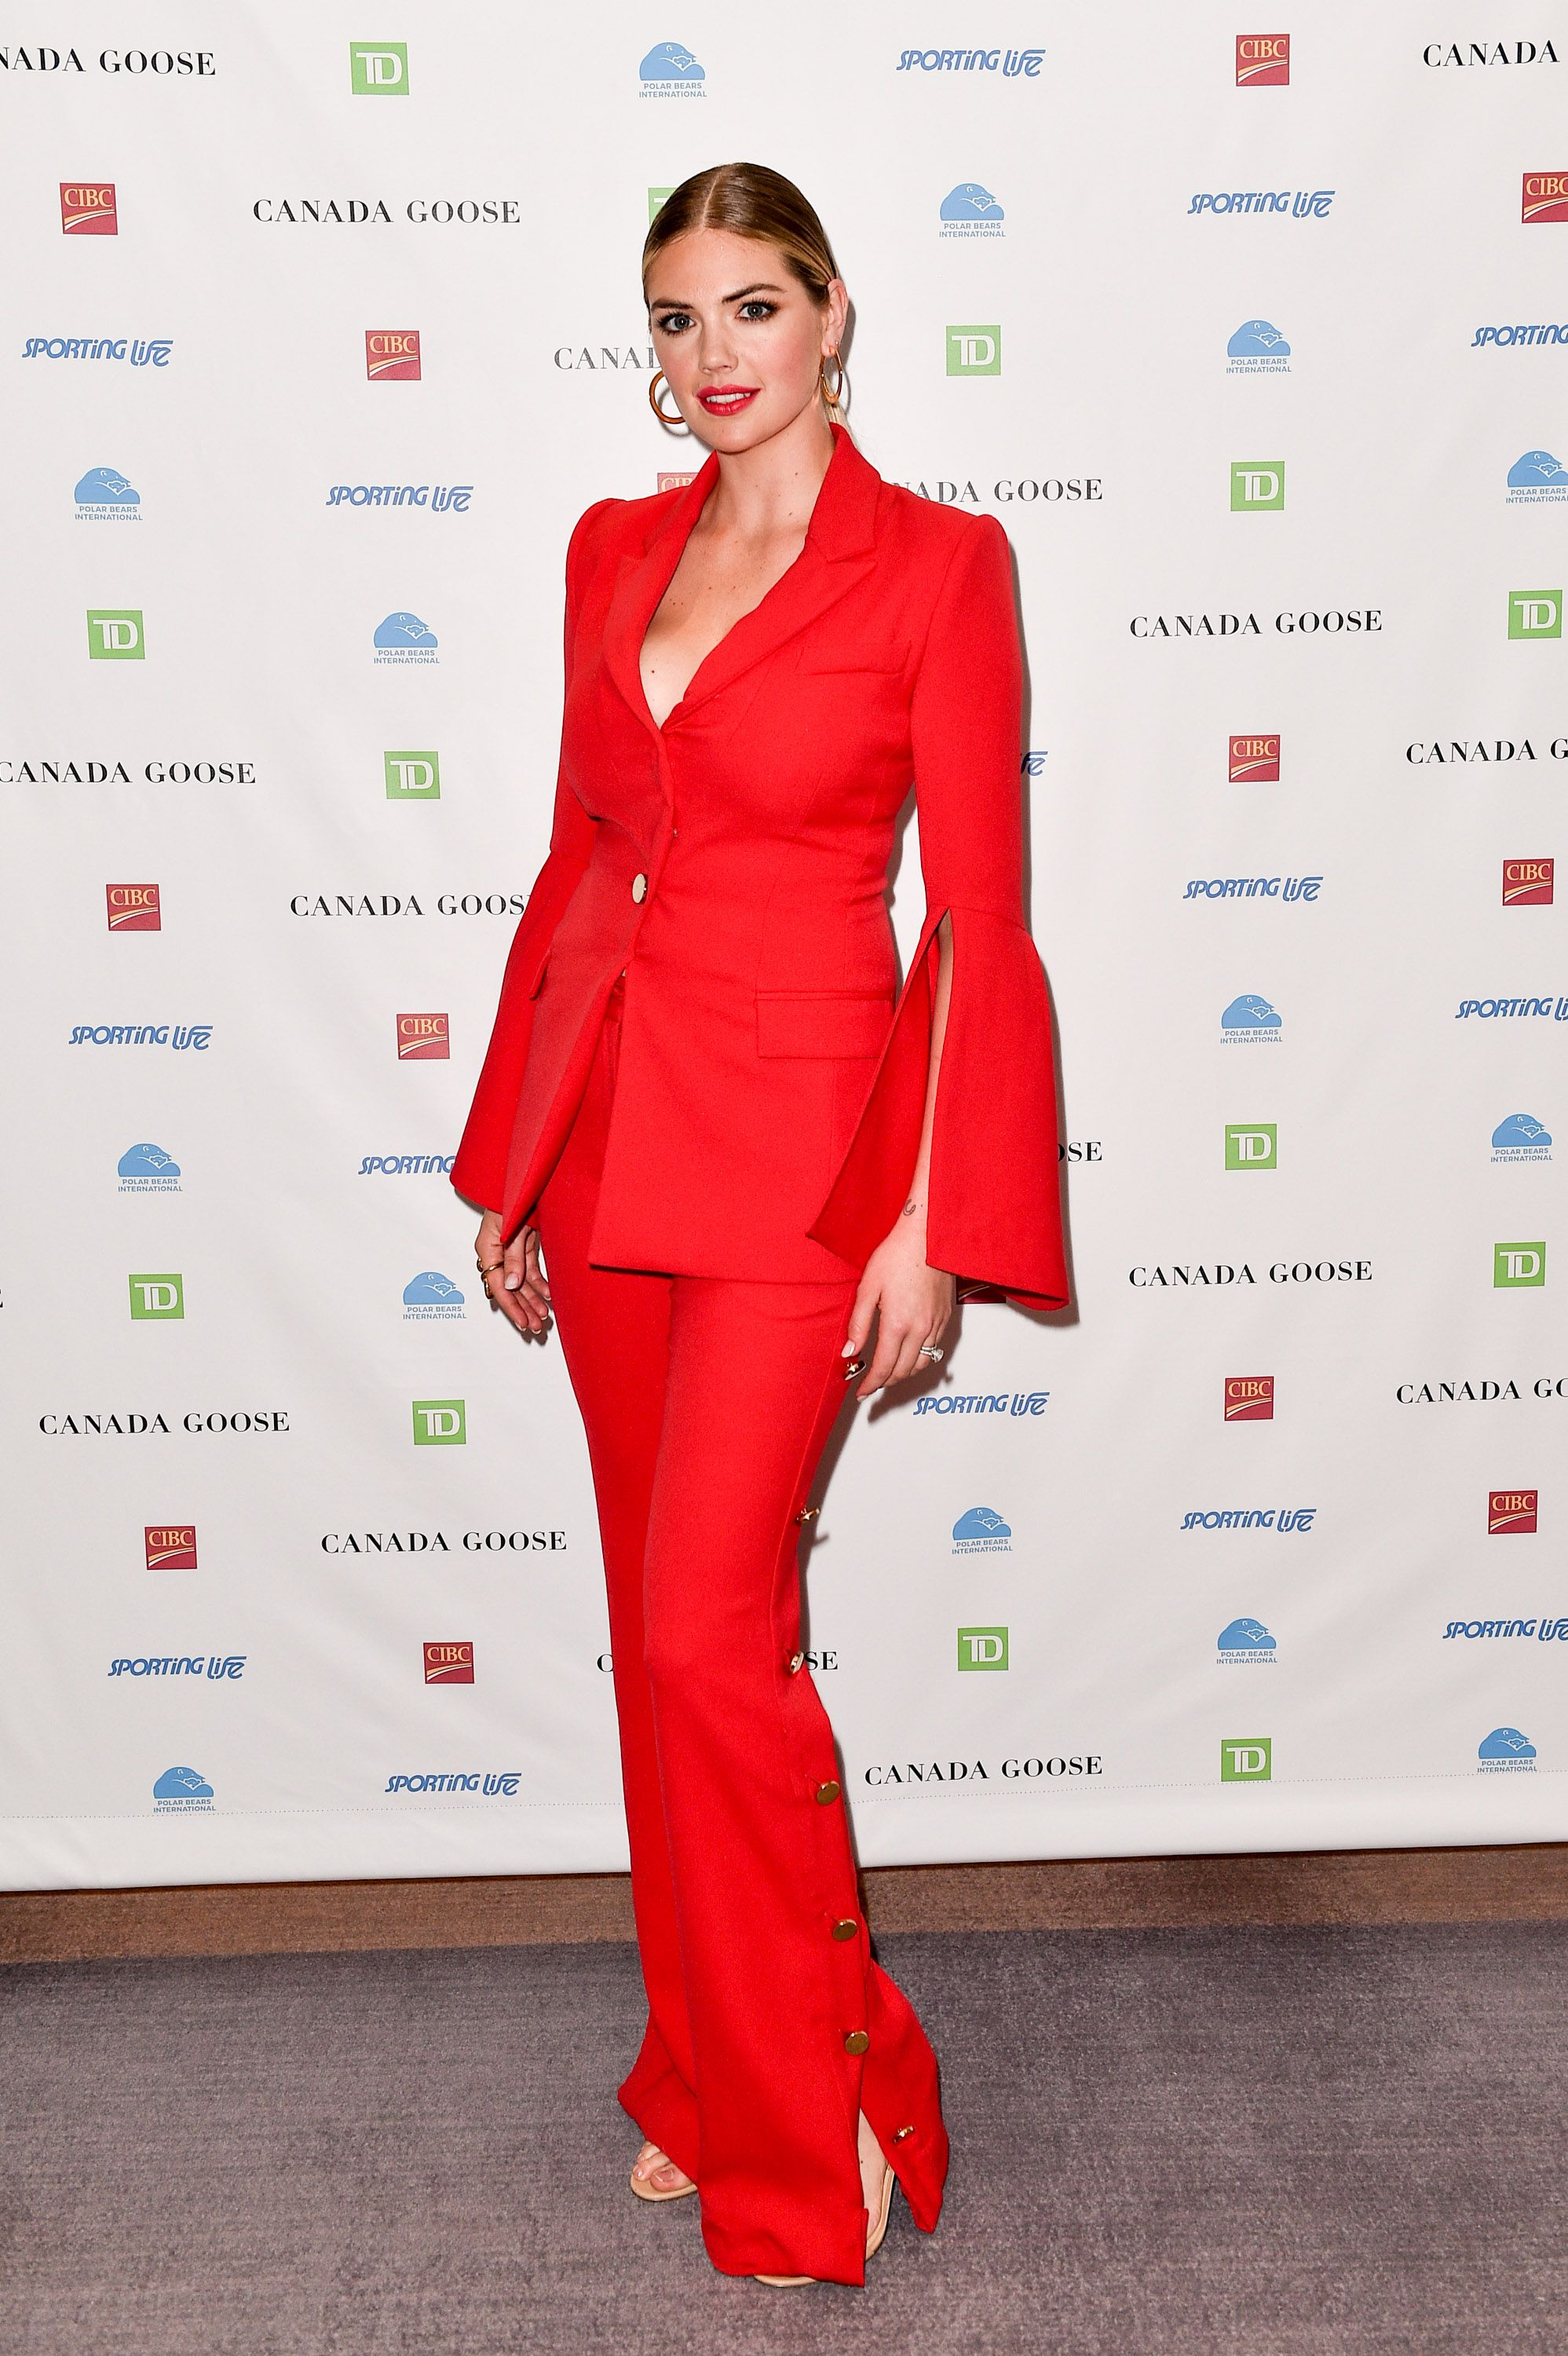 dbf85666c2c Best Dressed Celebrities This Month - February 2018